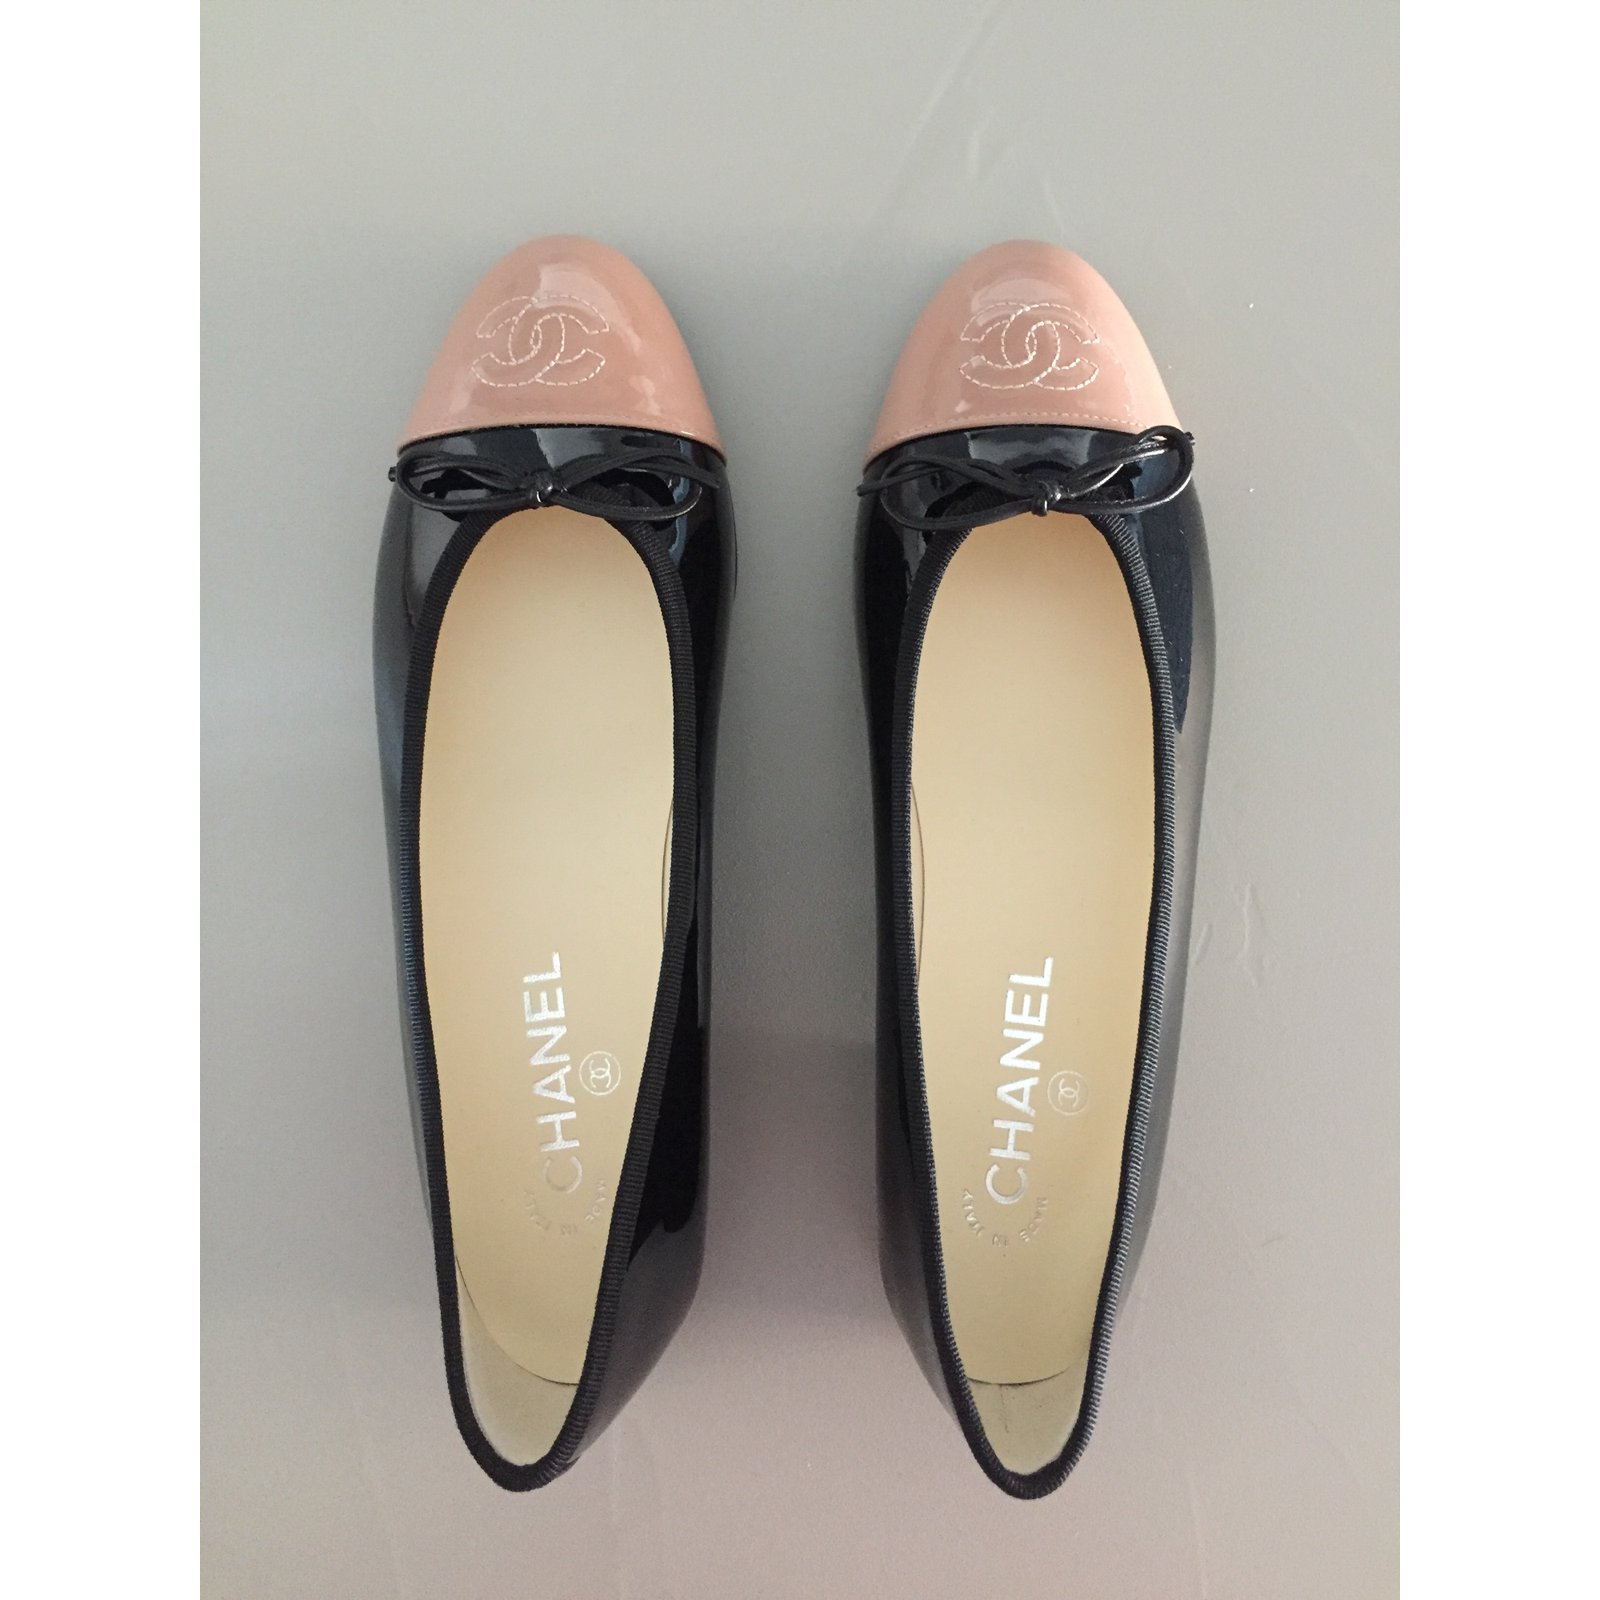 8f7d66d61899 Facebook · Pin This. Chanel Ballerinas Flats Patent leather Black ref.48406